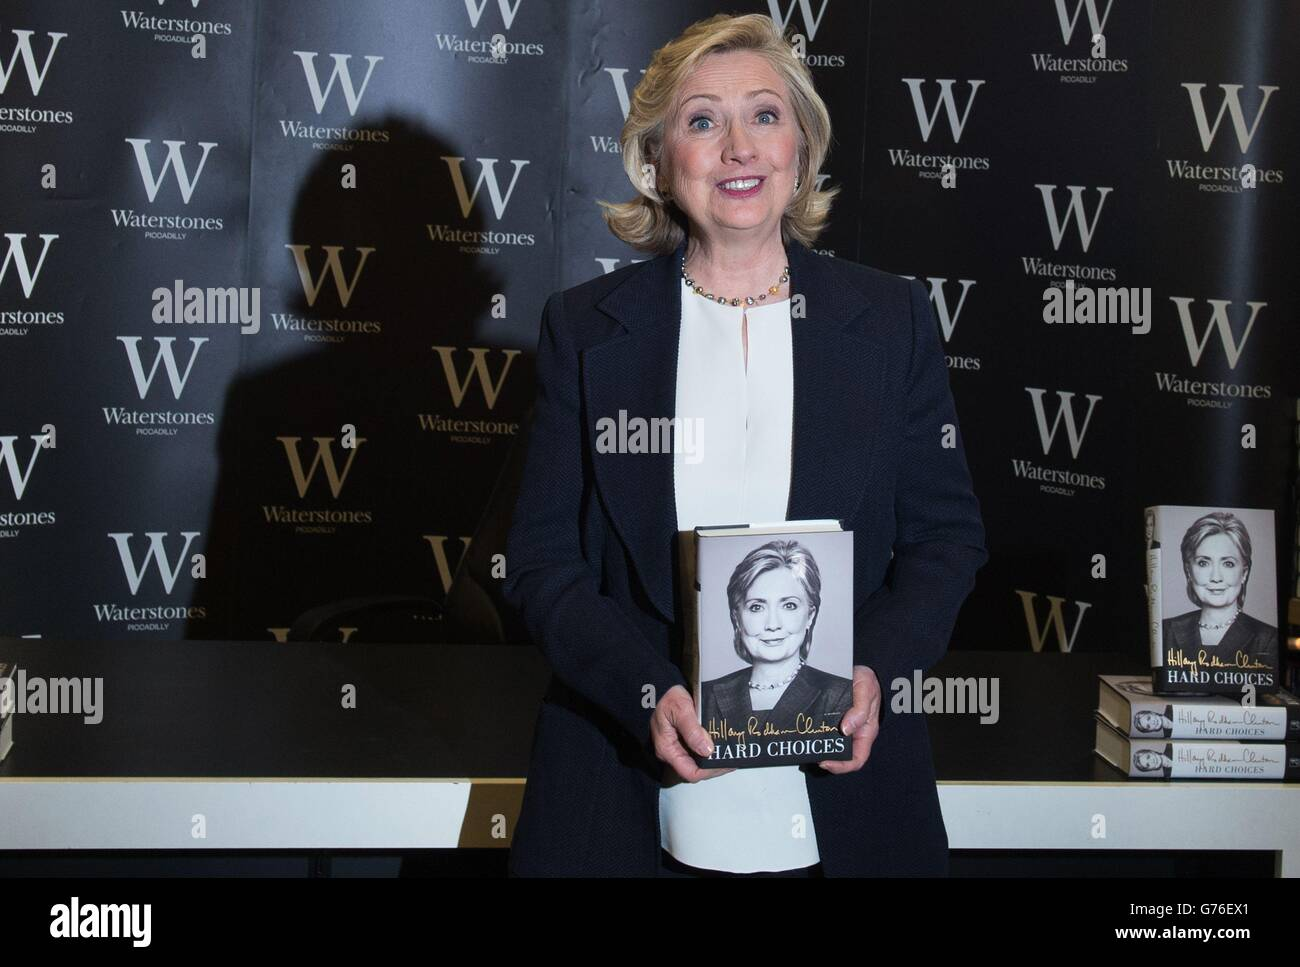 Former U.S. Secretary of State Hillary Clinton during a book signing for her new title 'Hard Choices' at Waterstones Stock Photo